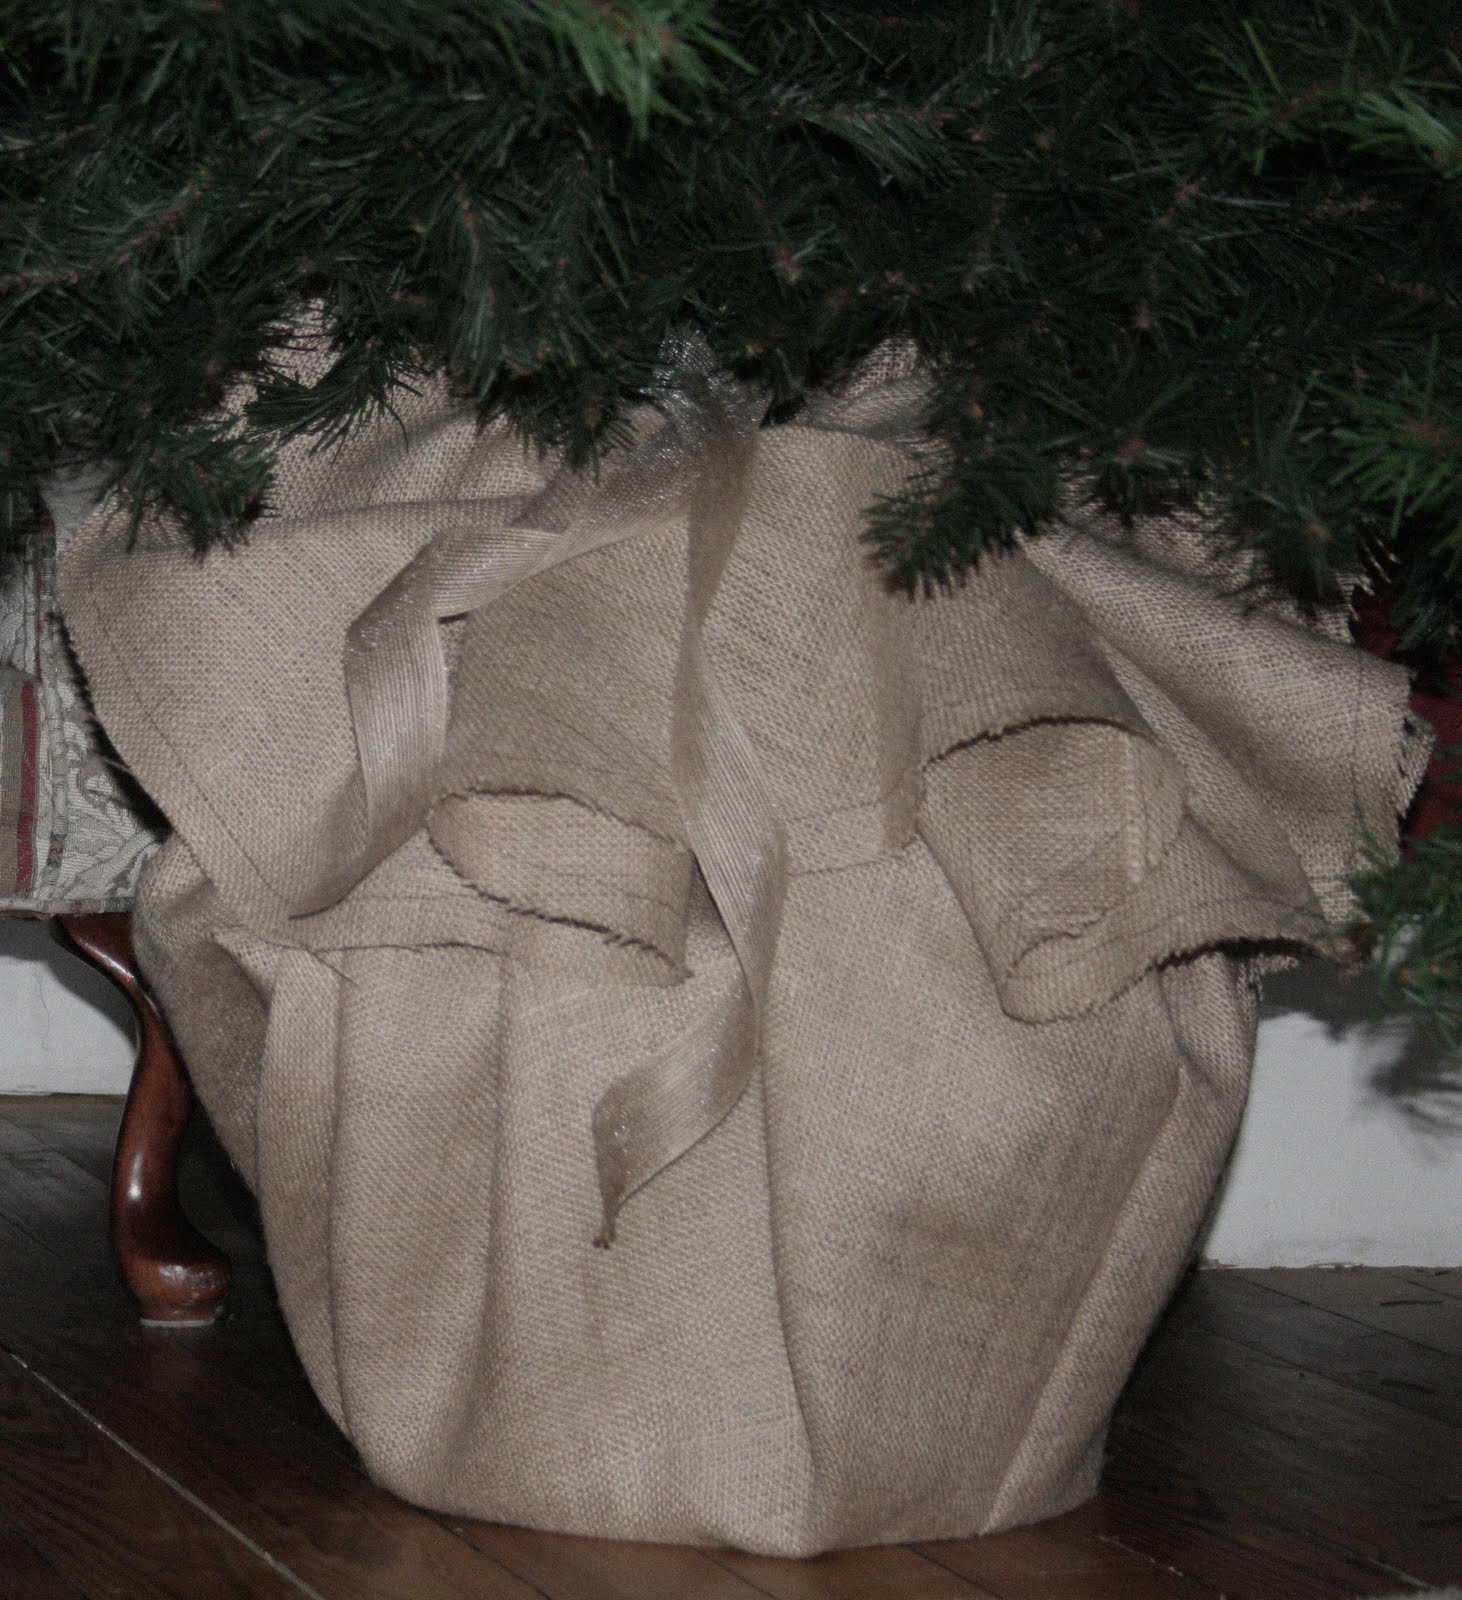 Christmas tree stand cover diy show off ™